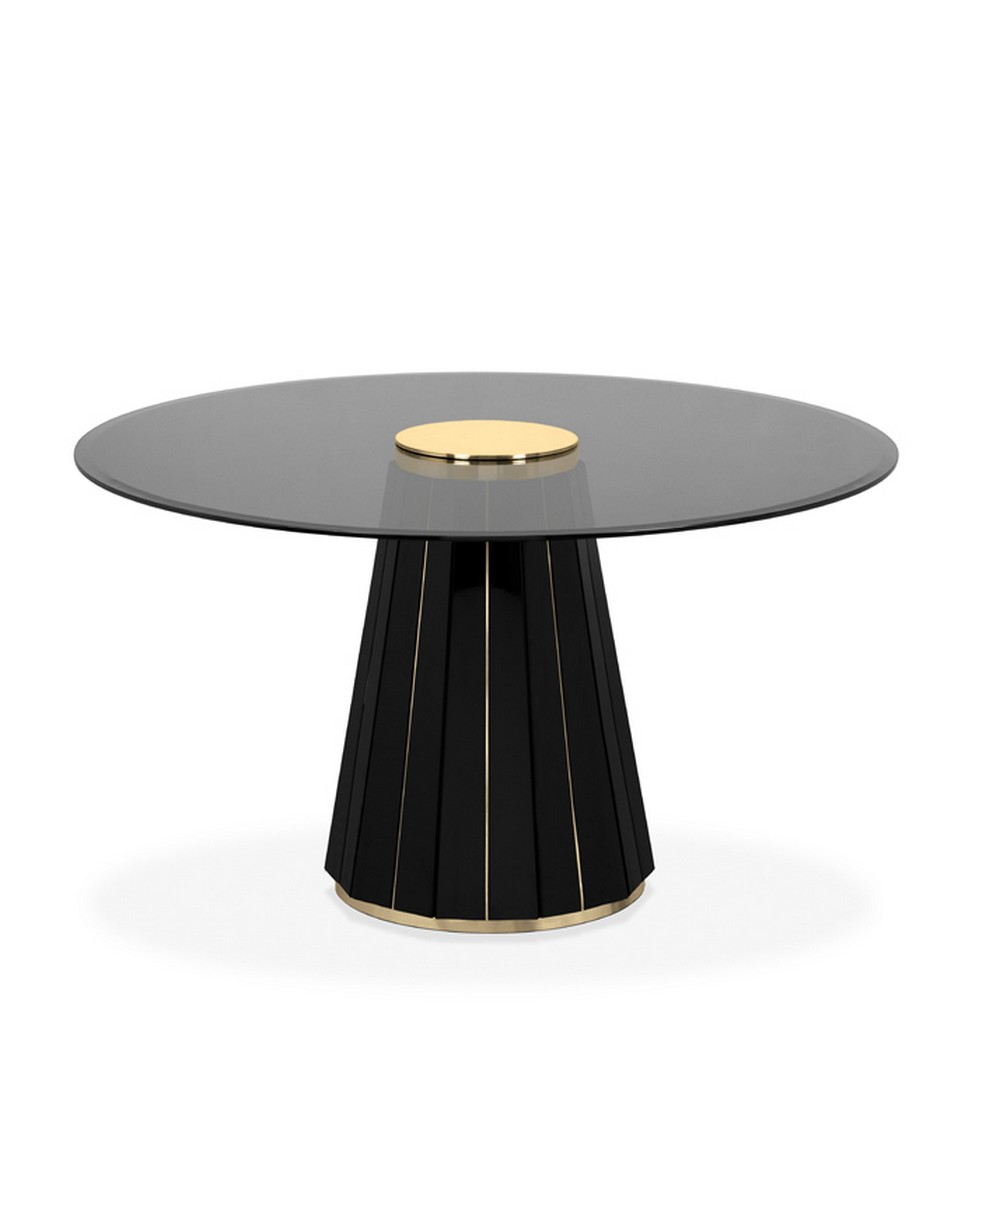 Dining Room Projects by Marcel Wanders marcel wanders Dining Room Projects by Marcel Wanders 4 darina